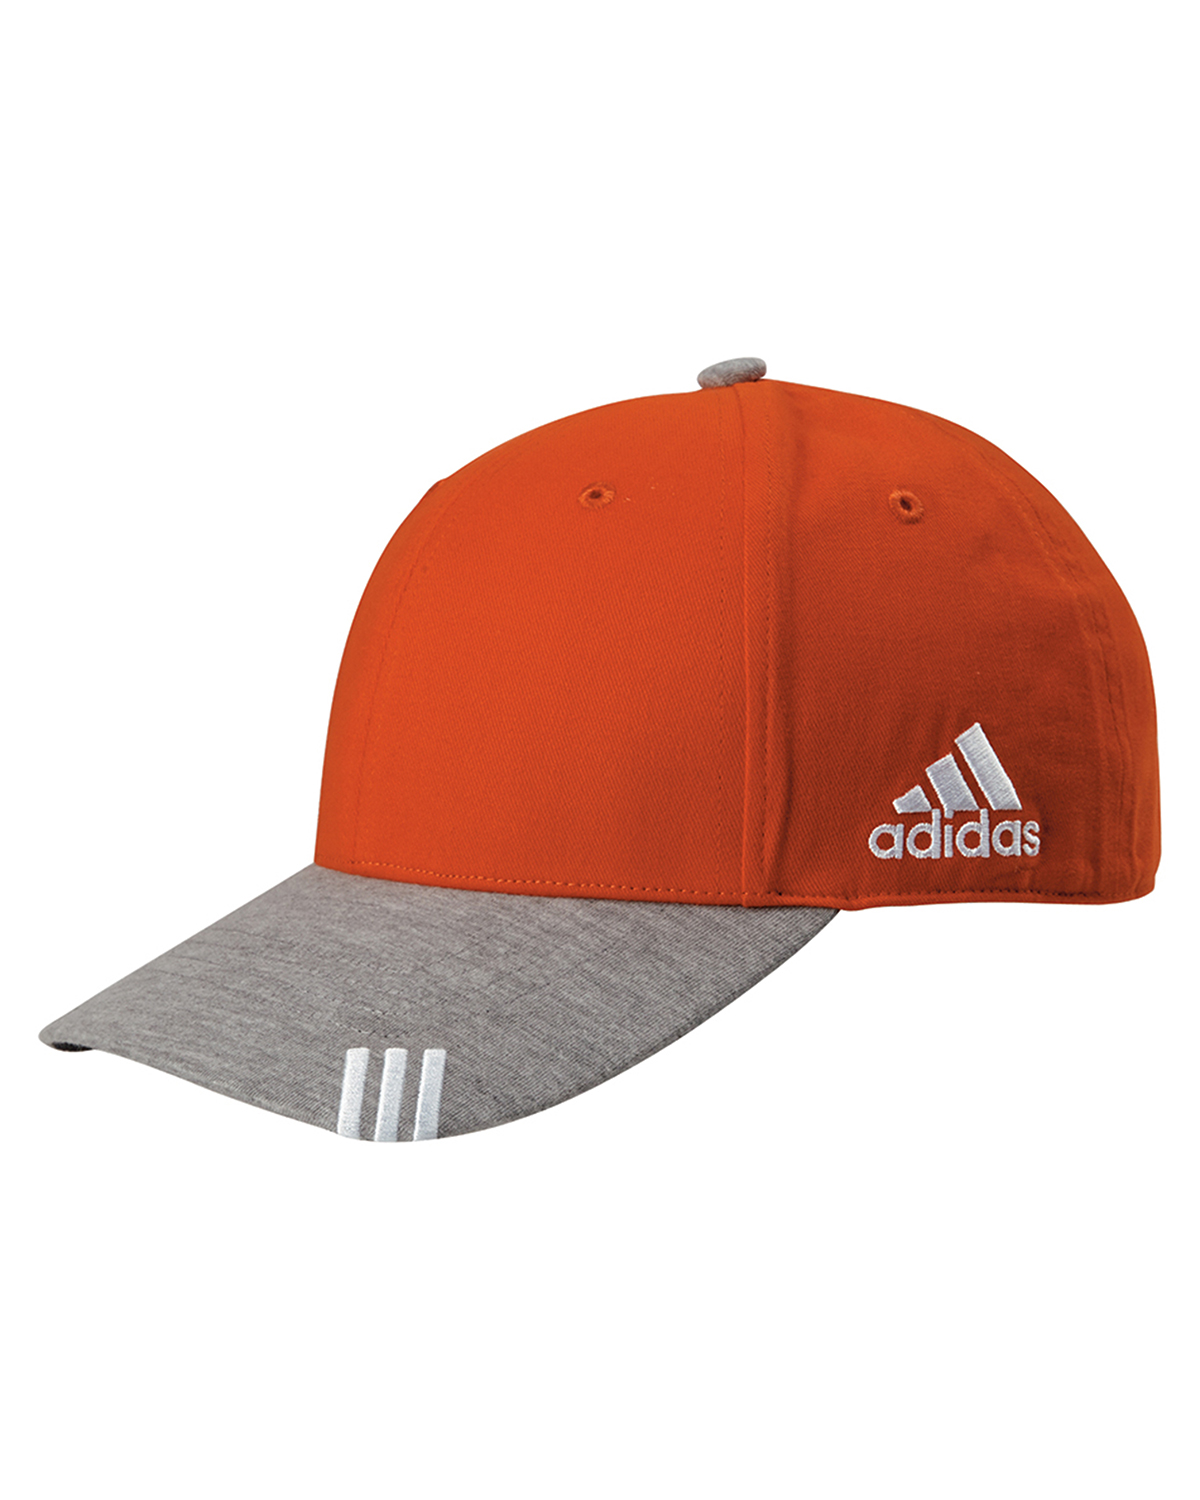 Adidas A625 Unisex Collegiate Heather Cap at GotApparel